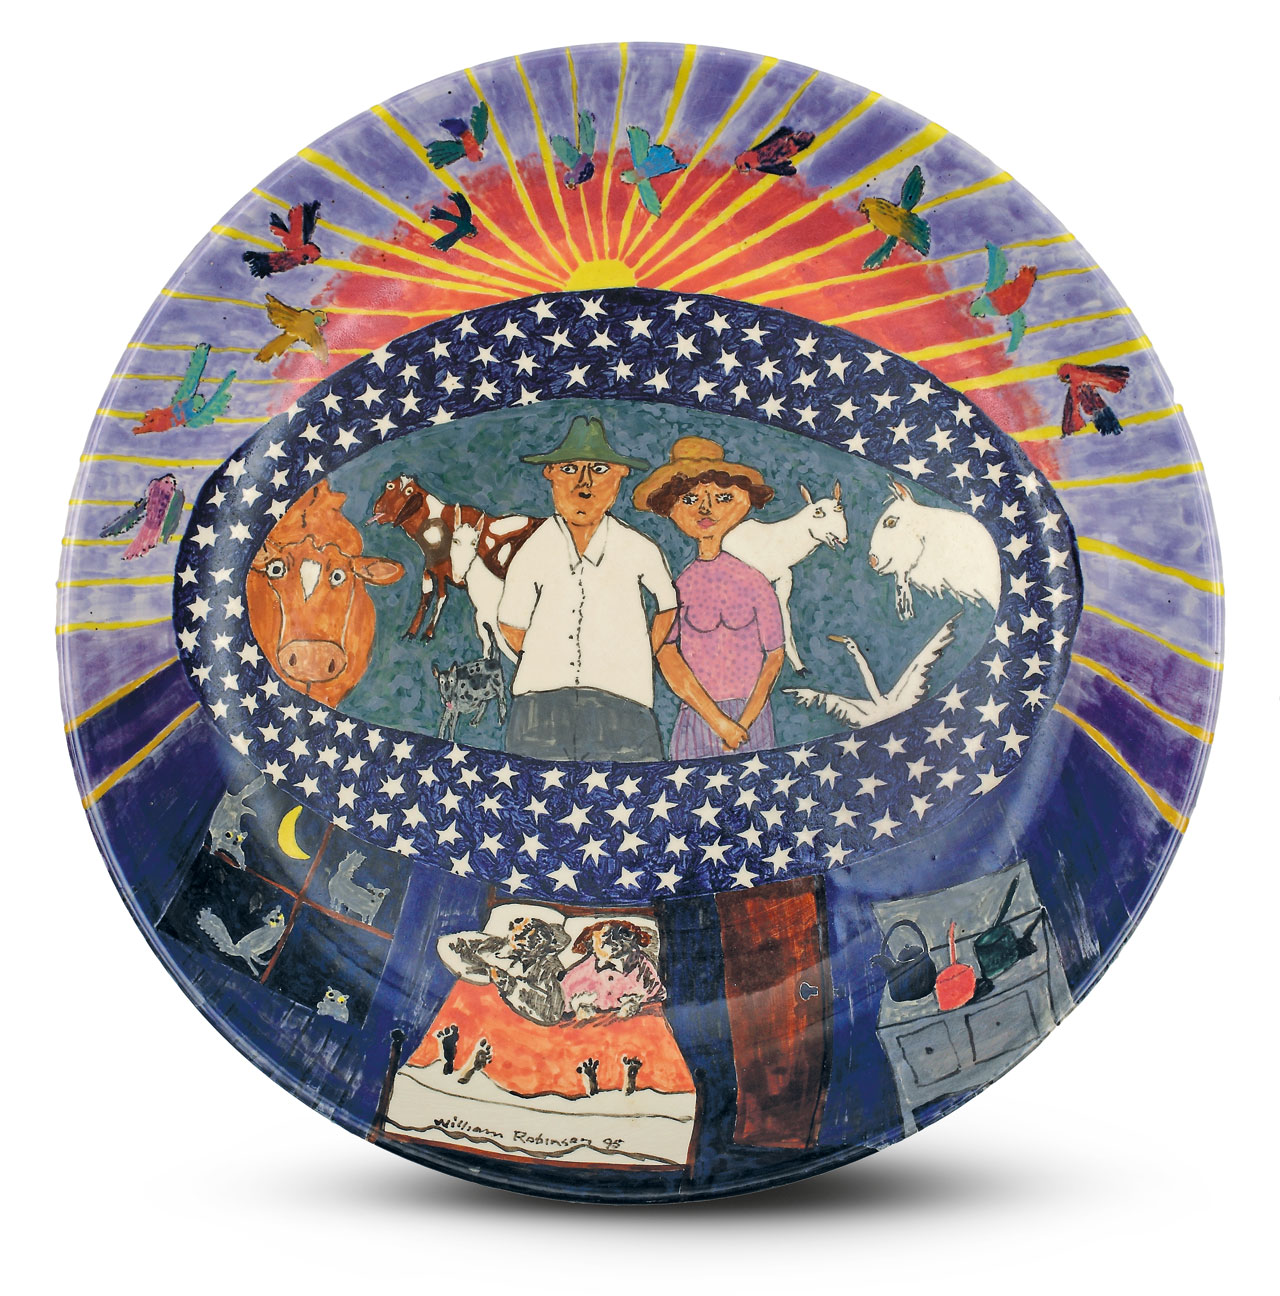 William Robinson 'William and Shirley, day and night' 1995. Glazed stoneware bowl. Wheel thrown by Errol Barnes. Private collection, Brisbane.